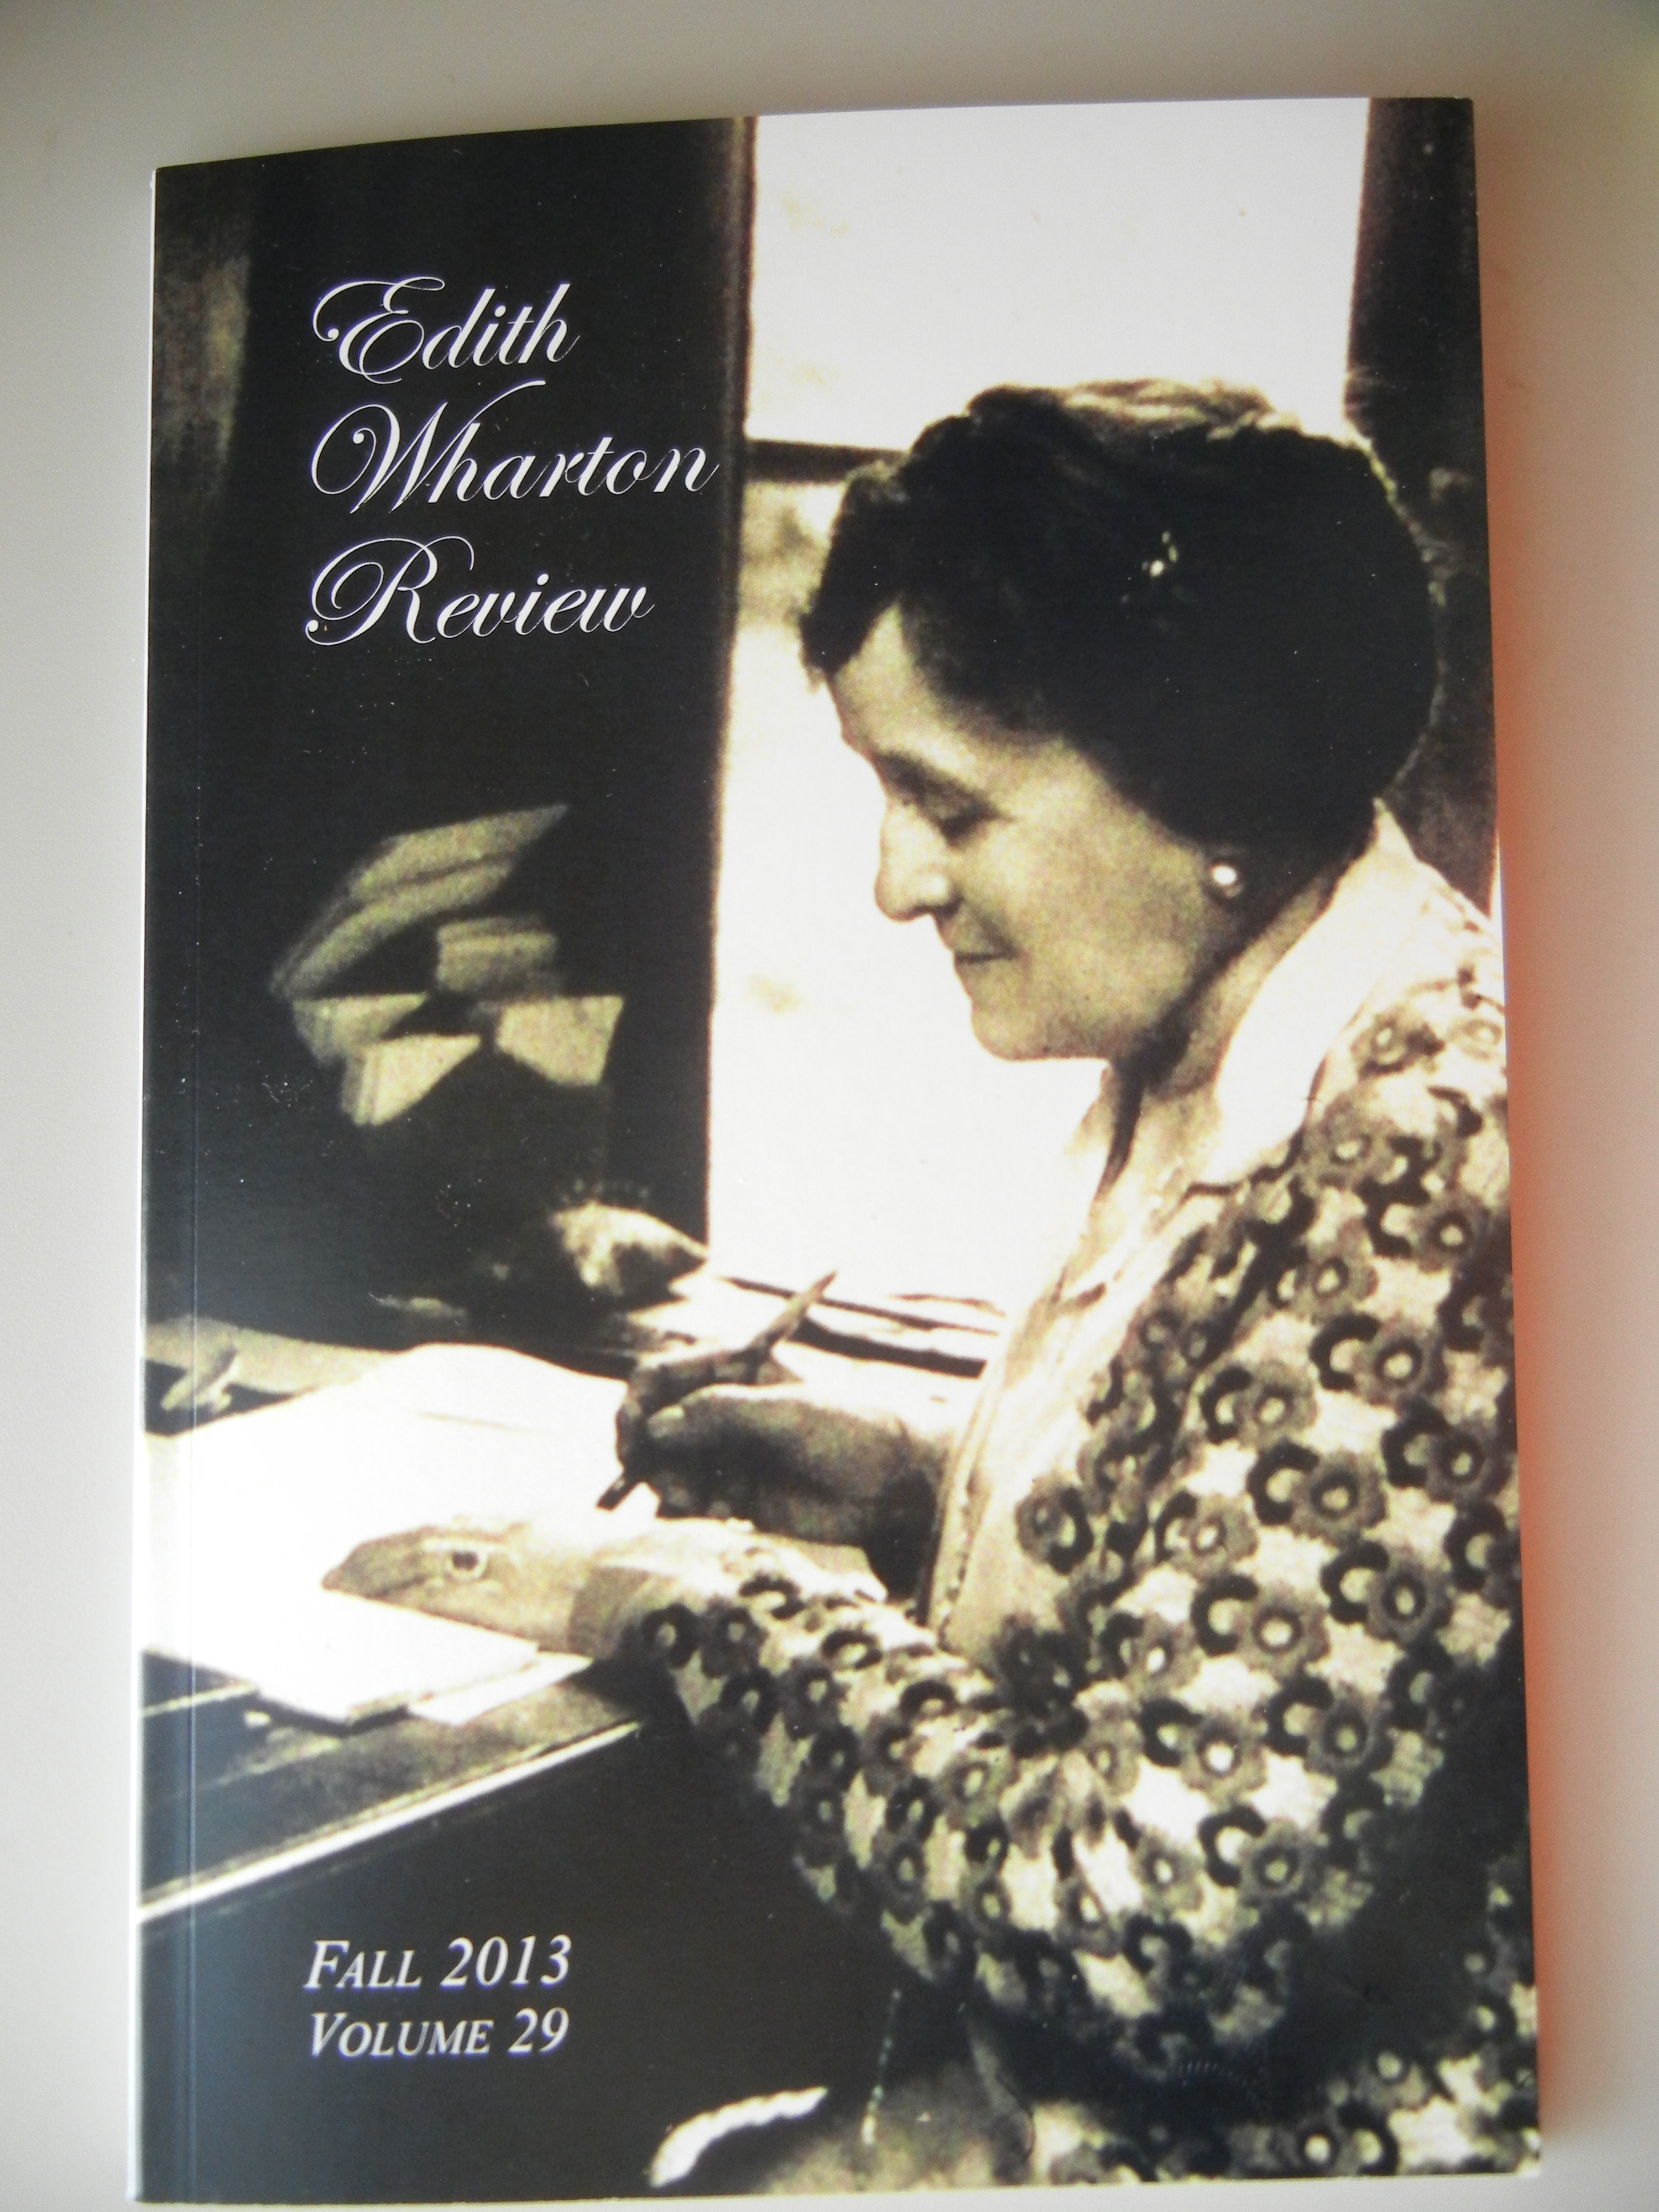 ews news the edith wharton society edith wharton review volume 29 number 2 fall 2013